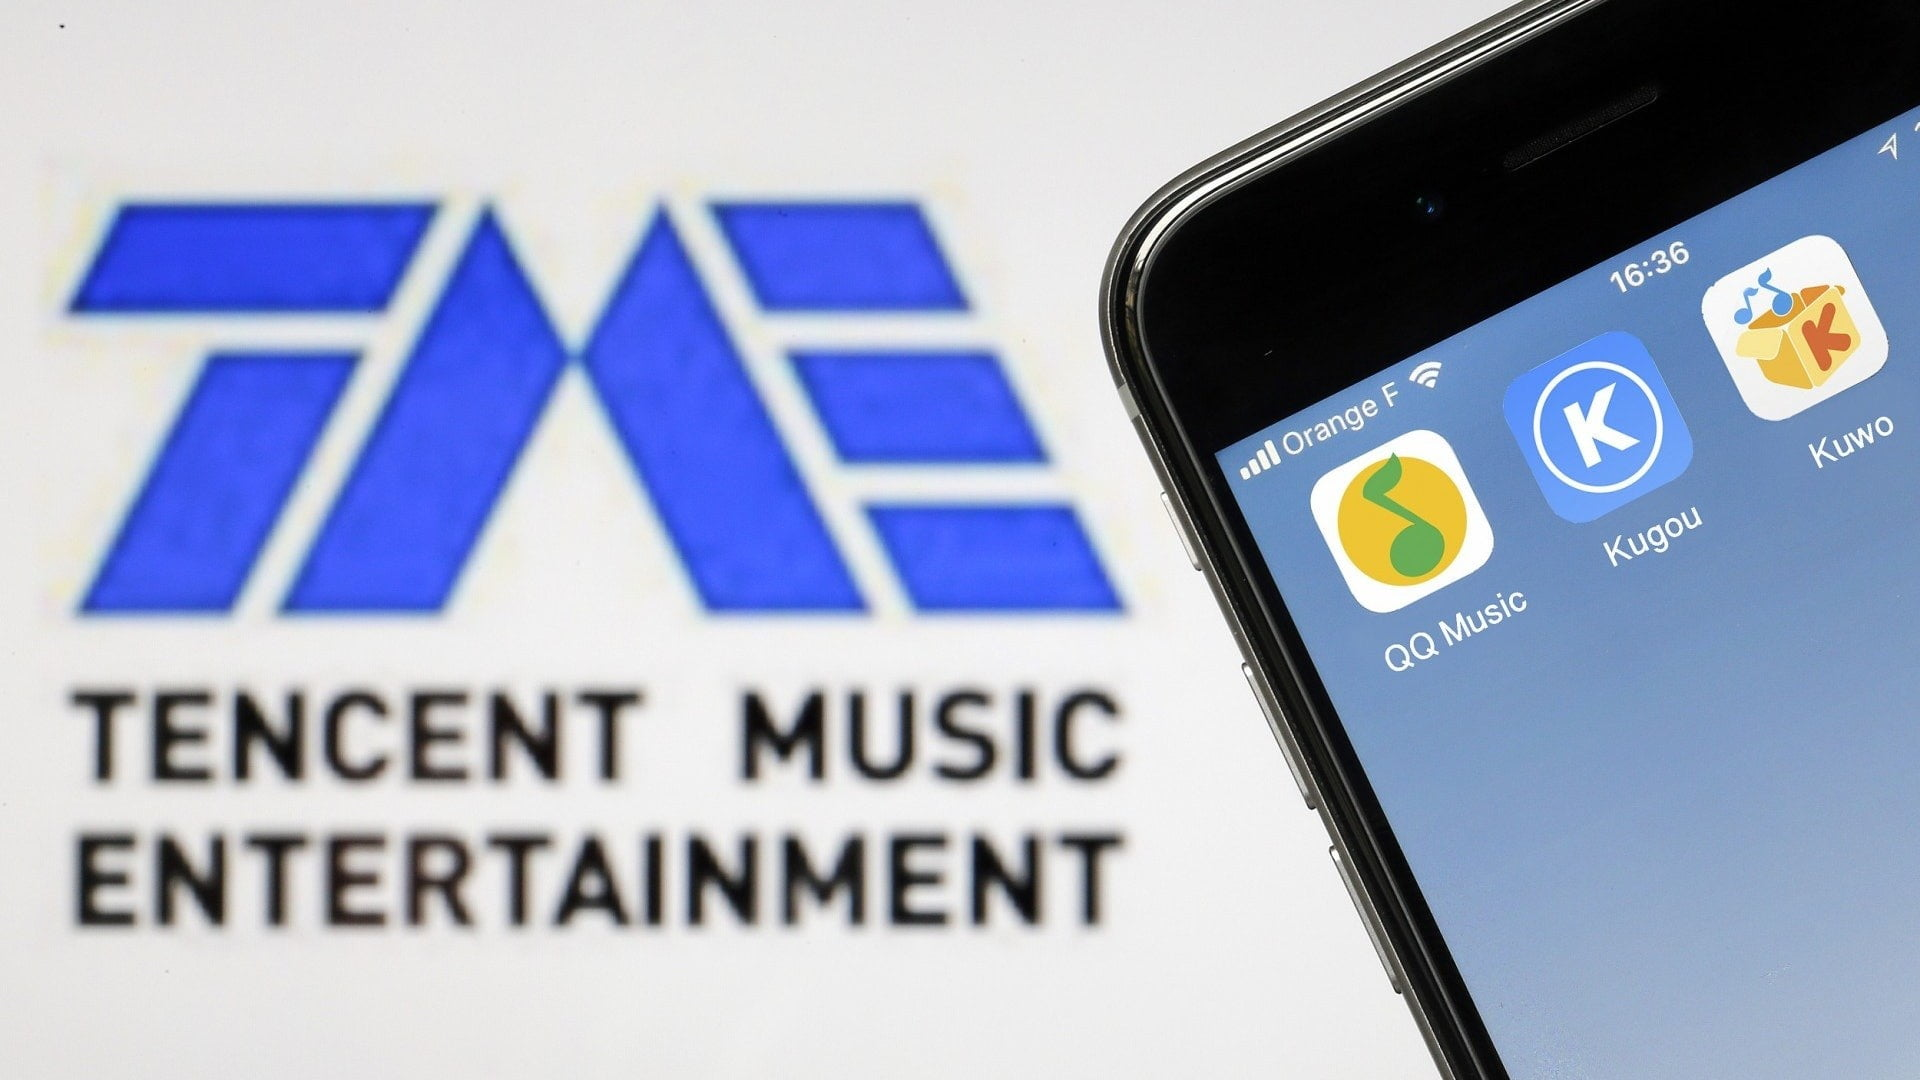 China's most popular music streaming service Tencent Music is coming to the US